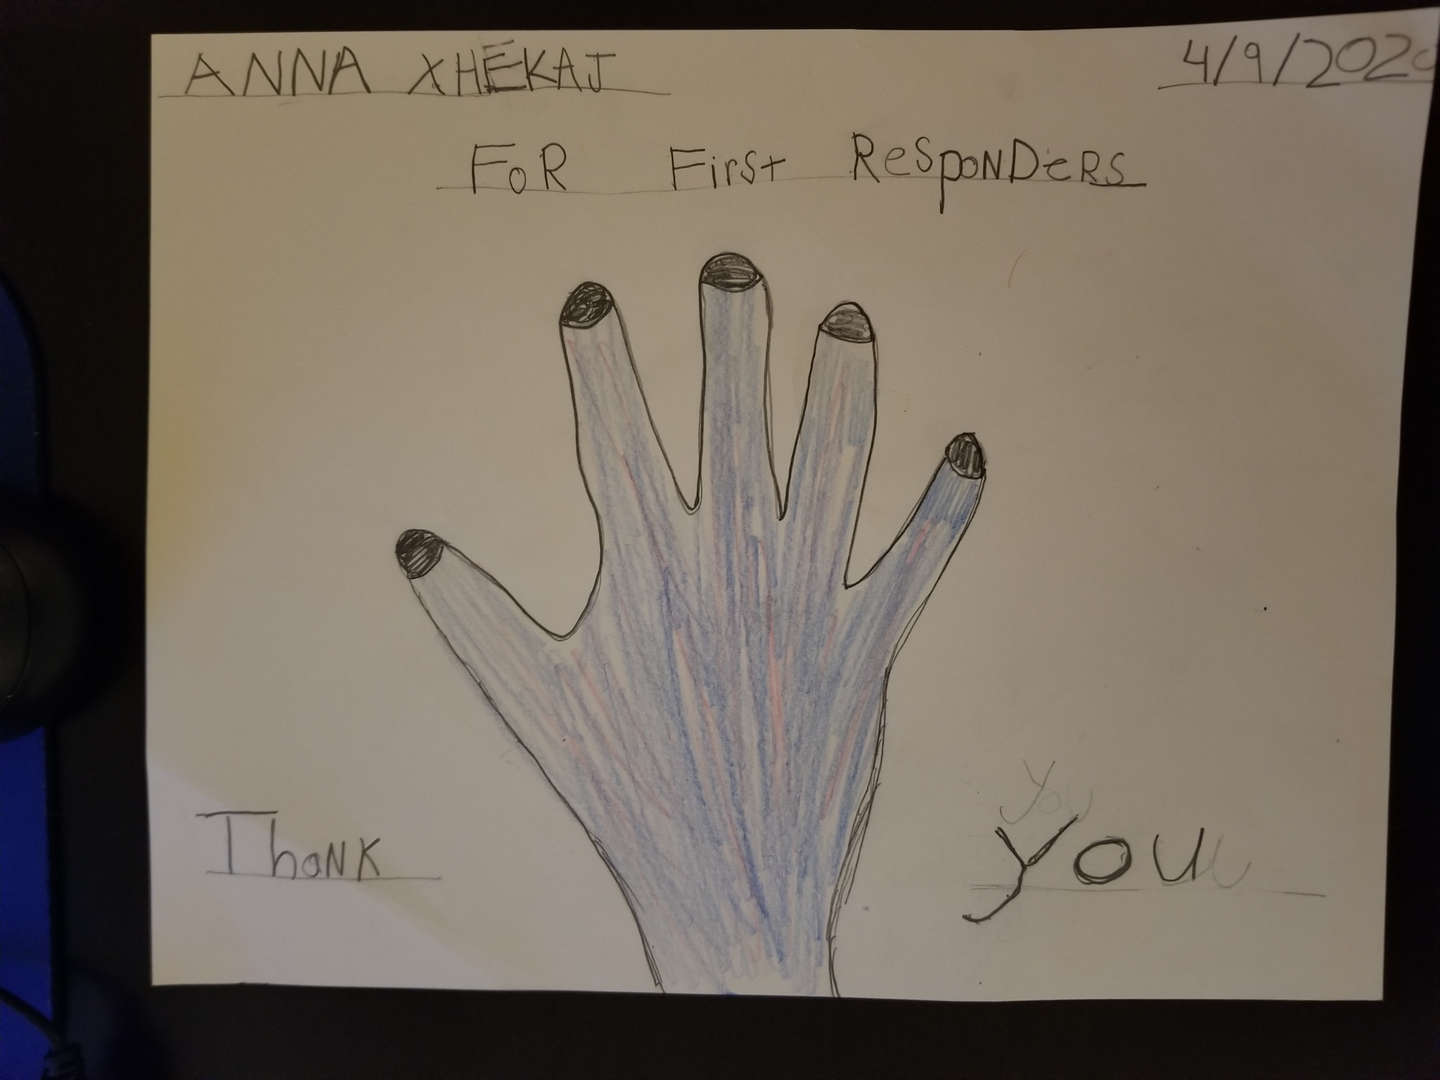 A thank you to first responders from Anna from Ms. Diciembri's class